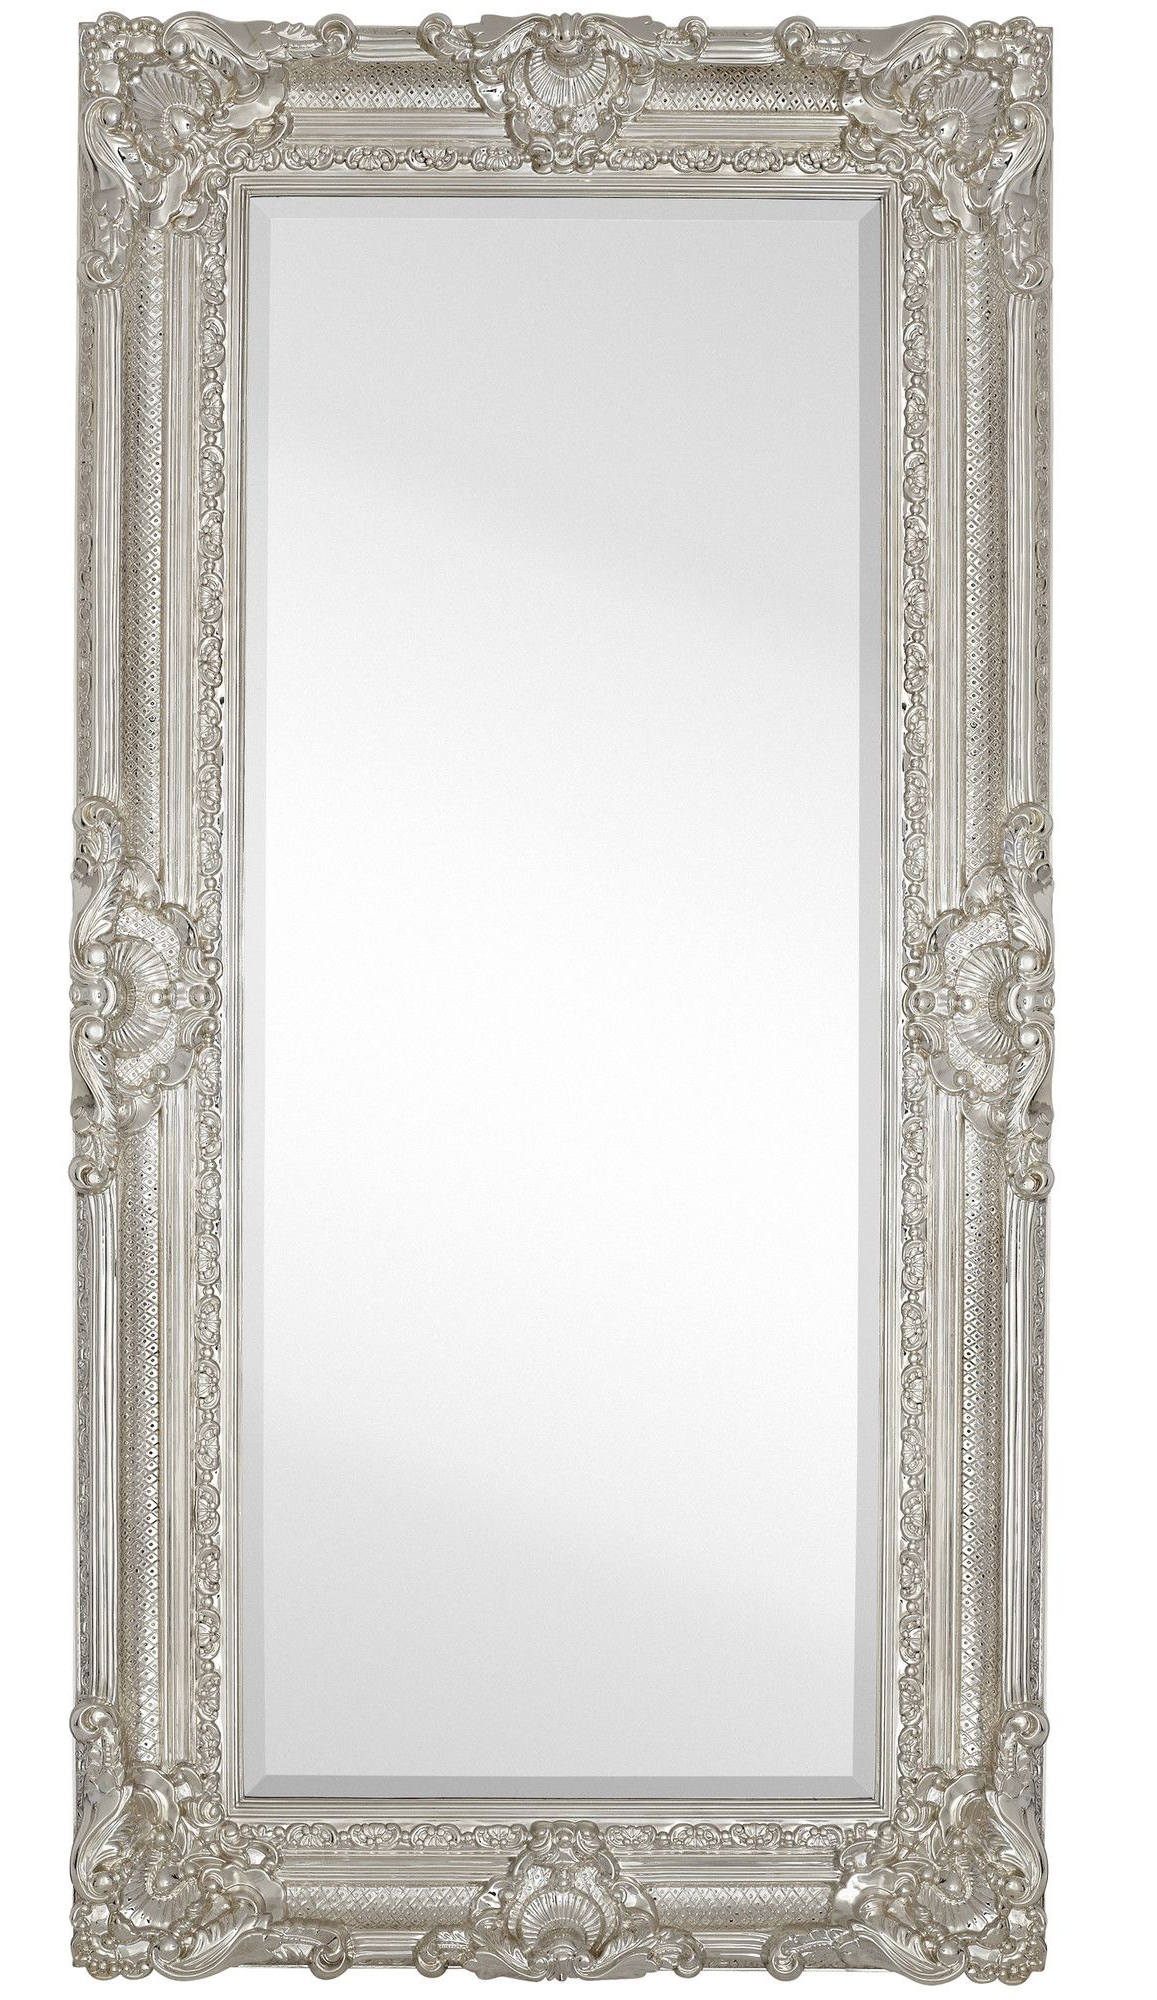 Large Traditional Polished Chrome Rectangular Beveled Glass Framed With Regard To Well Liked Chrome Wall Mirrors (View 8 of 20)